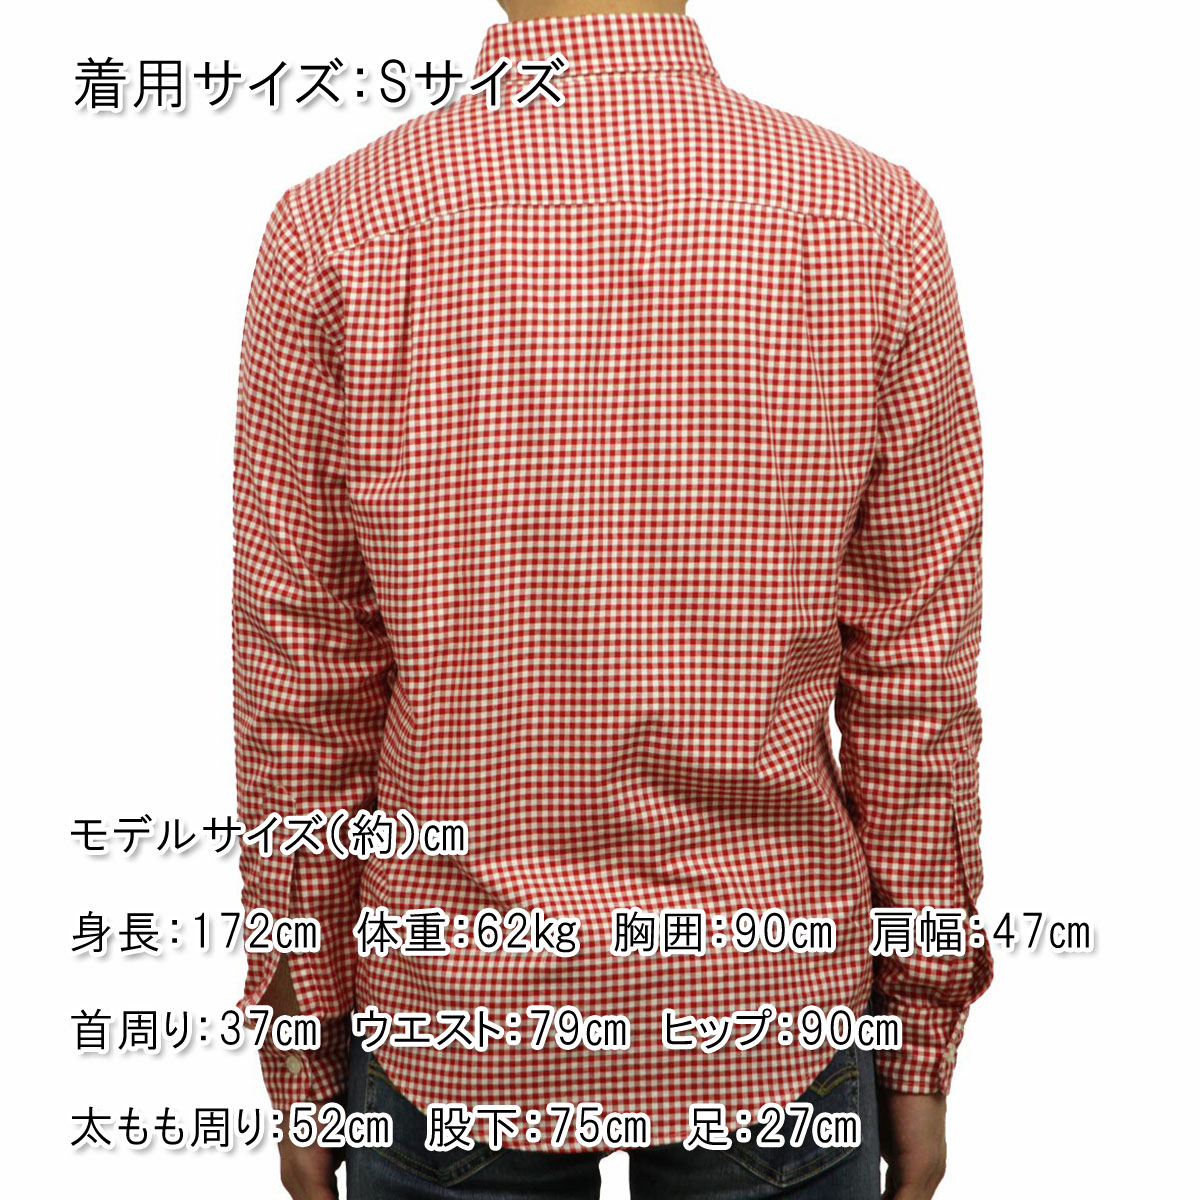 アバクロ Abercrombie&Fitch 正規品 メンズ 長袖シャツ  Gingham Herringbone Button-Up Shirt 125-168-2370-508